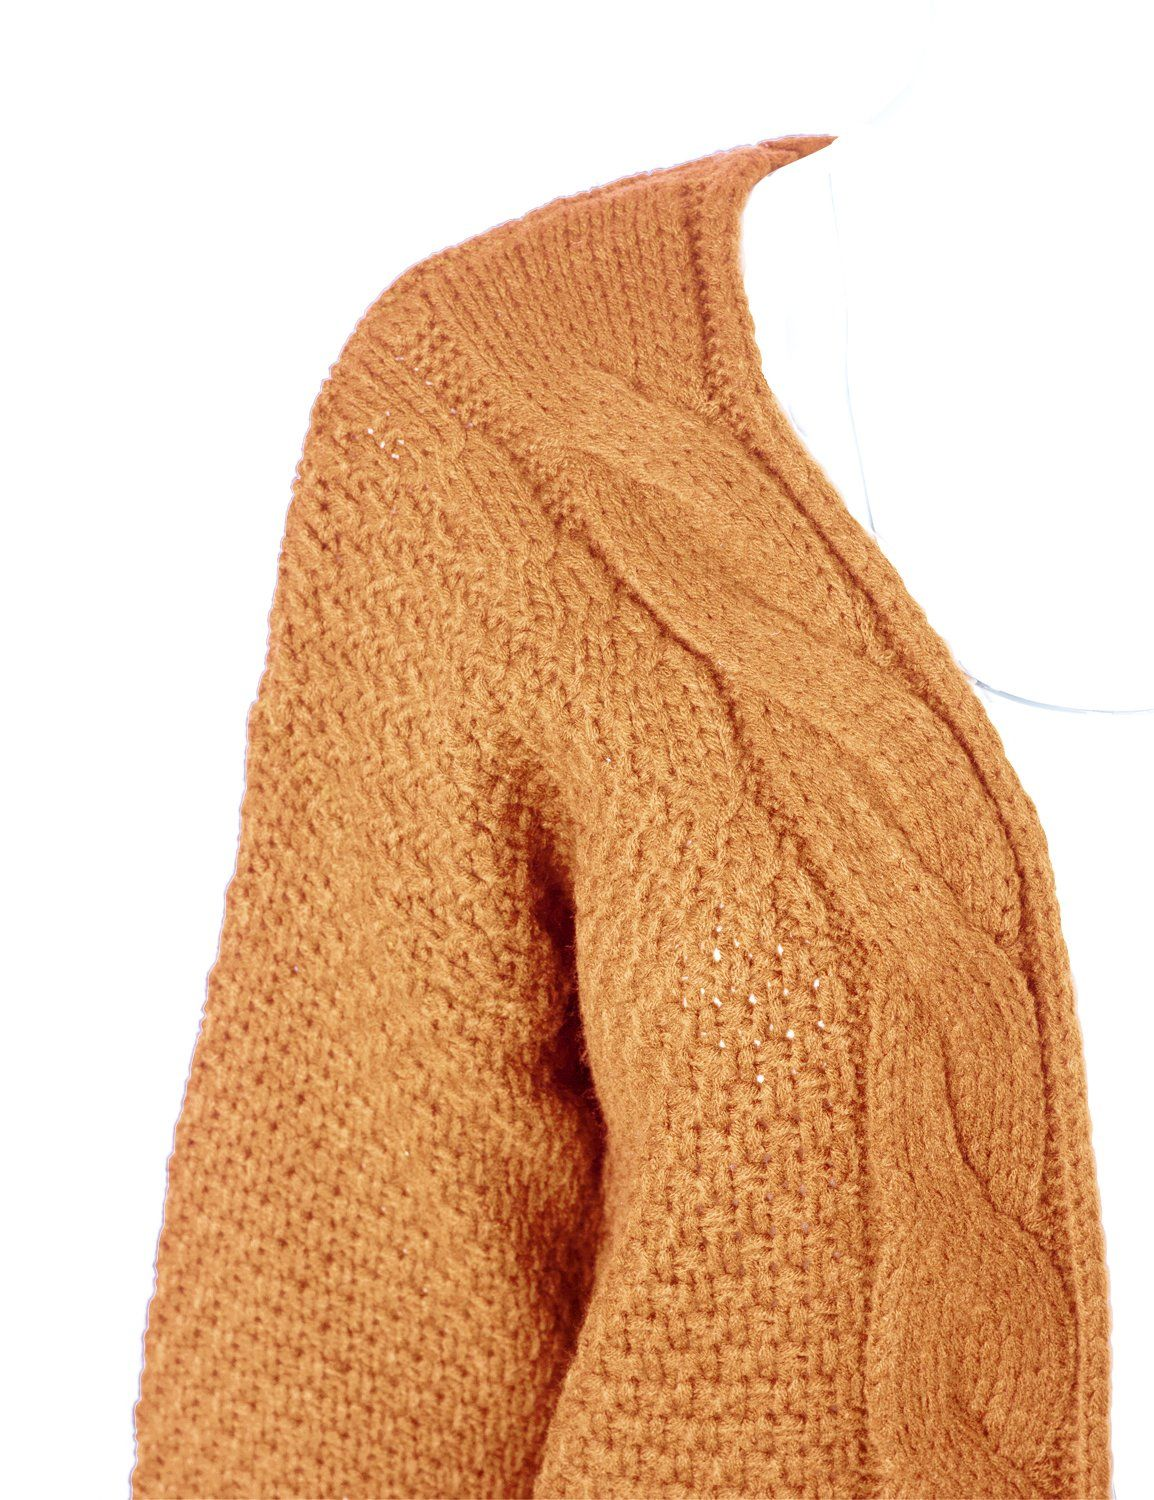 MAYSIX APPAREL Women Stylish Cotton Cable Knit Open Sweater Long Sleeve  Chunky Cardigan W Pocket Mustard ML   Click image for more details. a031e5aa7